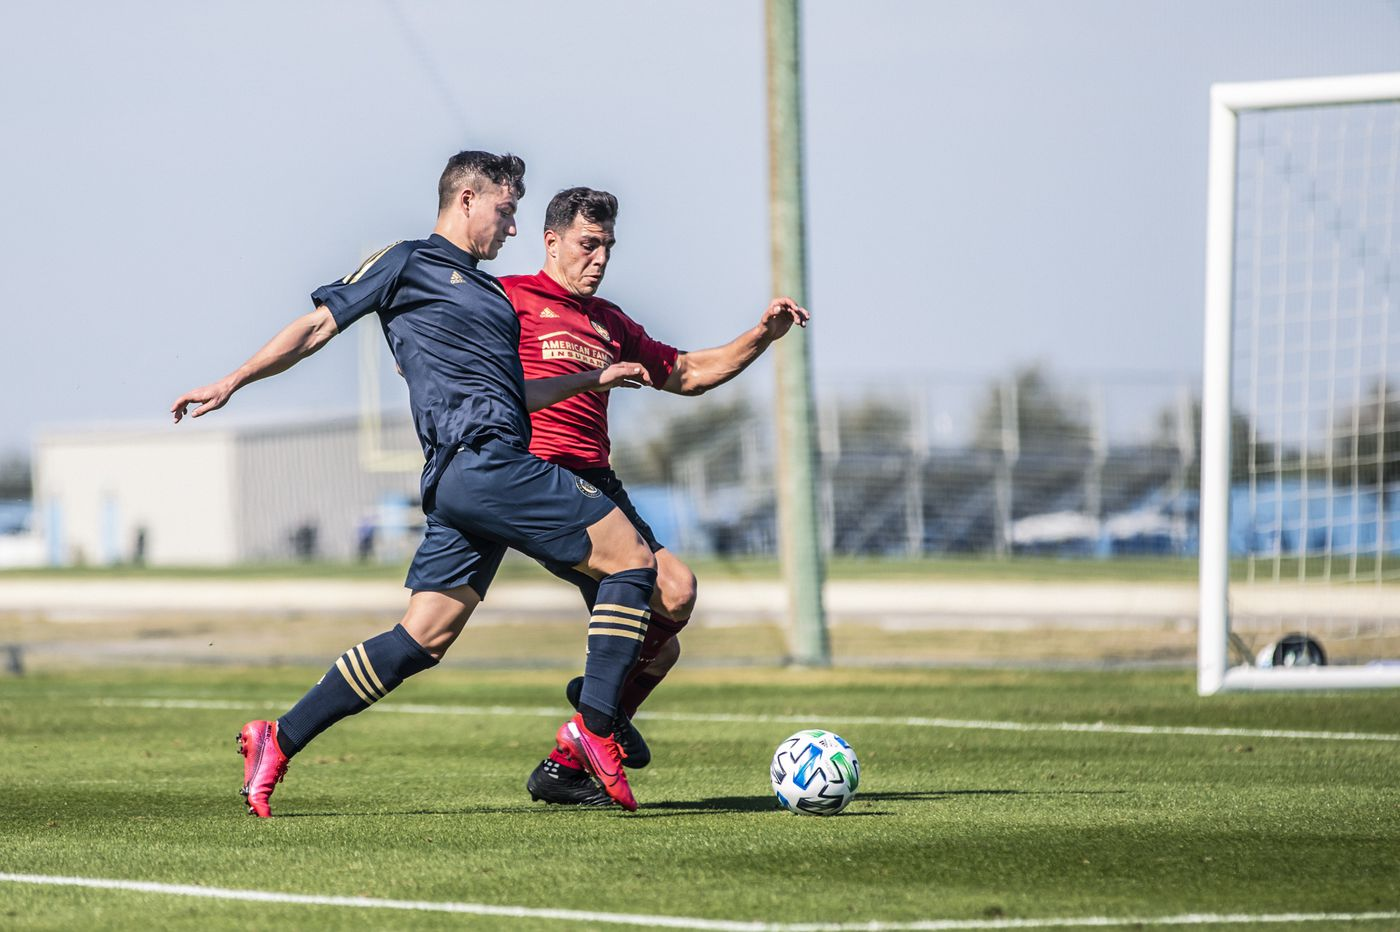 Anthony Fontana has his best chance yet to get regular playing time for the Union